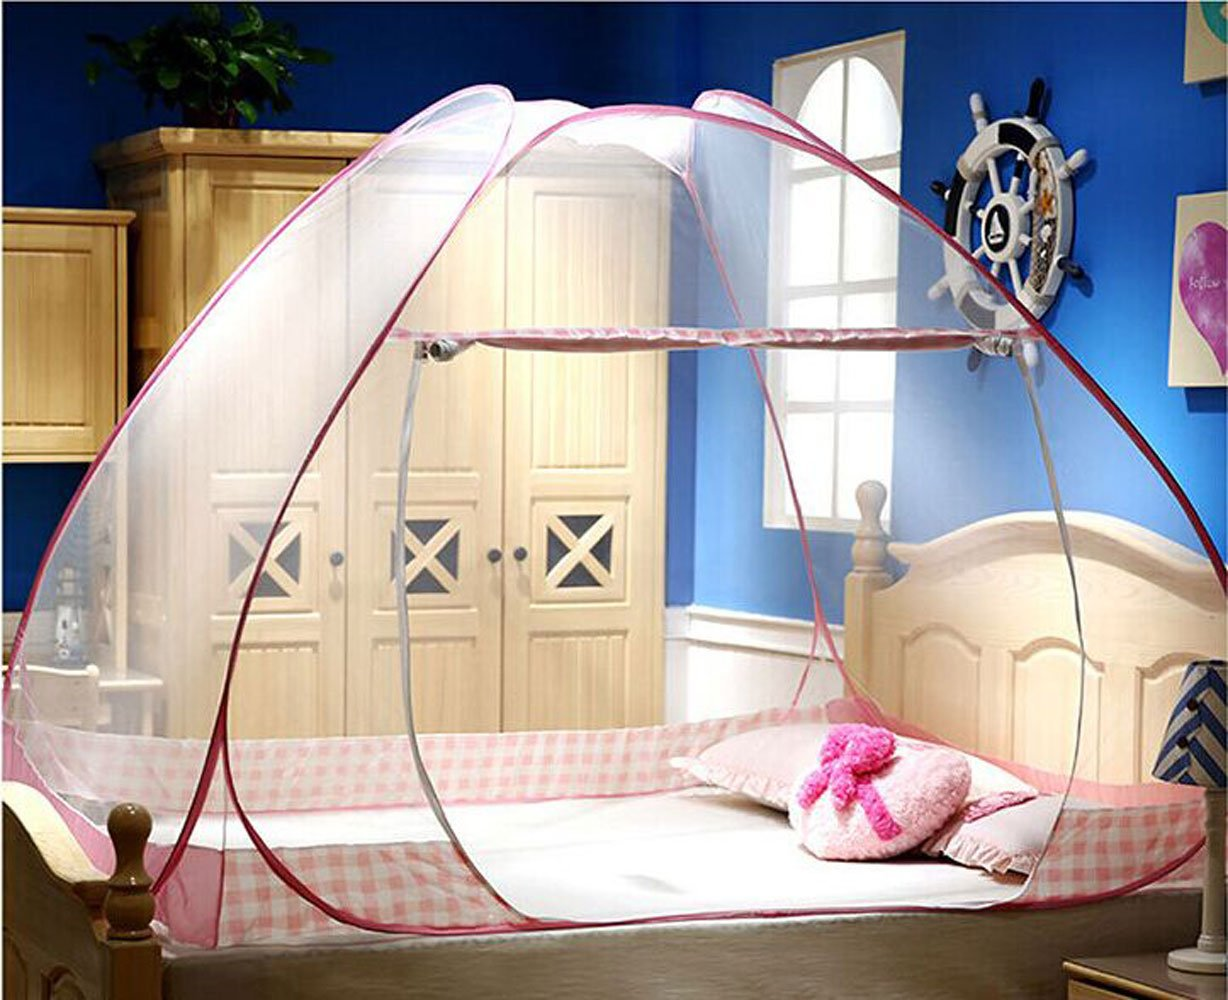 CdyBox Folding Mosquito Net Tent Canopy Curtains for Beds Home Bedroom Decor (1.8X2.0m, Pink) by CdyBox (Image #2)